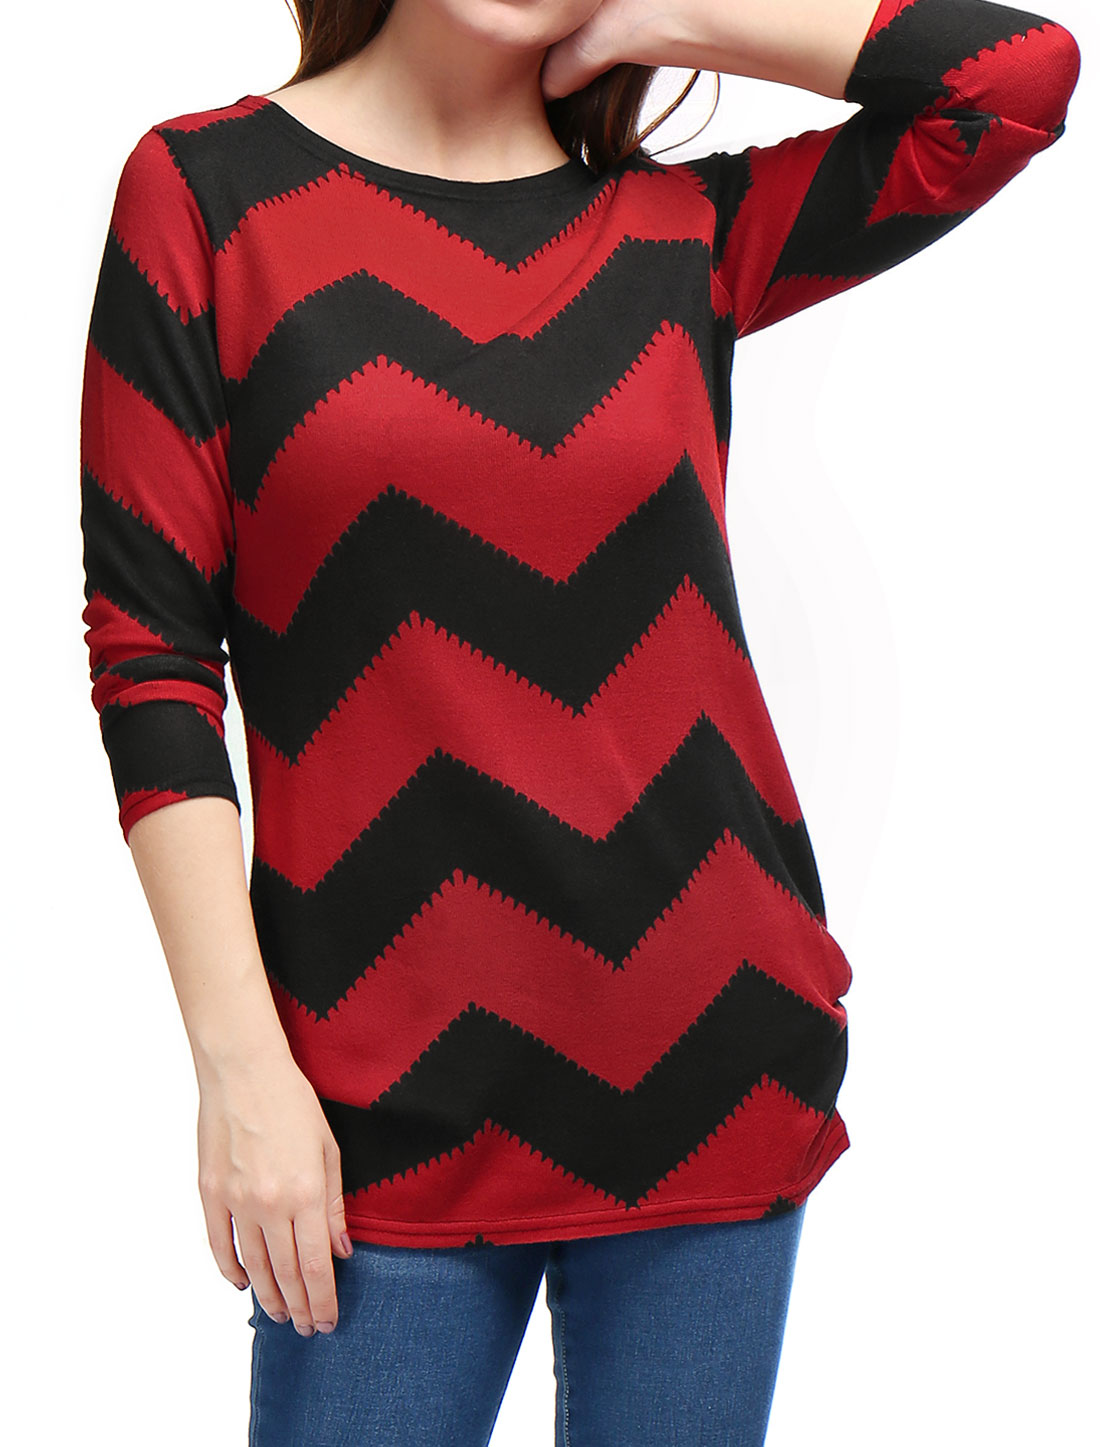 Woman Zig-Zag Pattern Knitted Relax Fit Tunic Top Black Red L